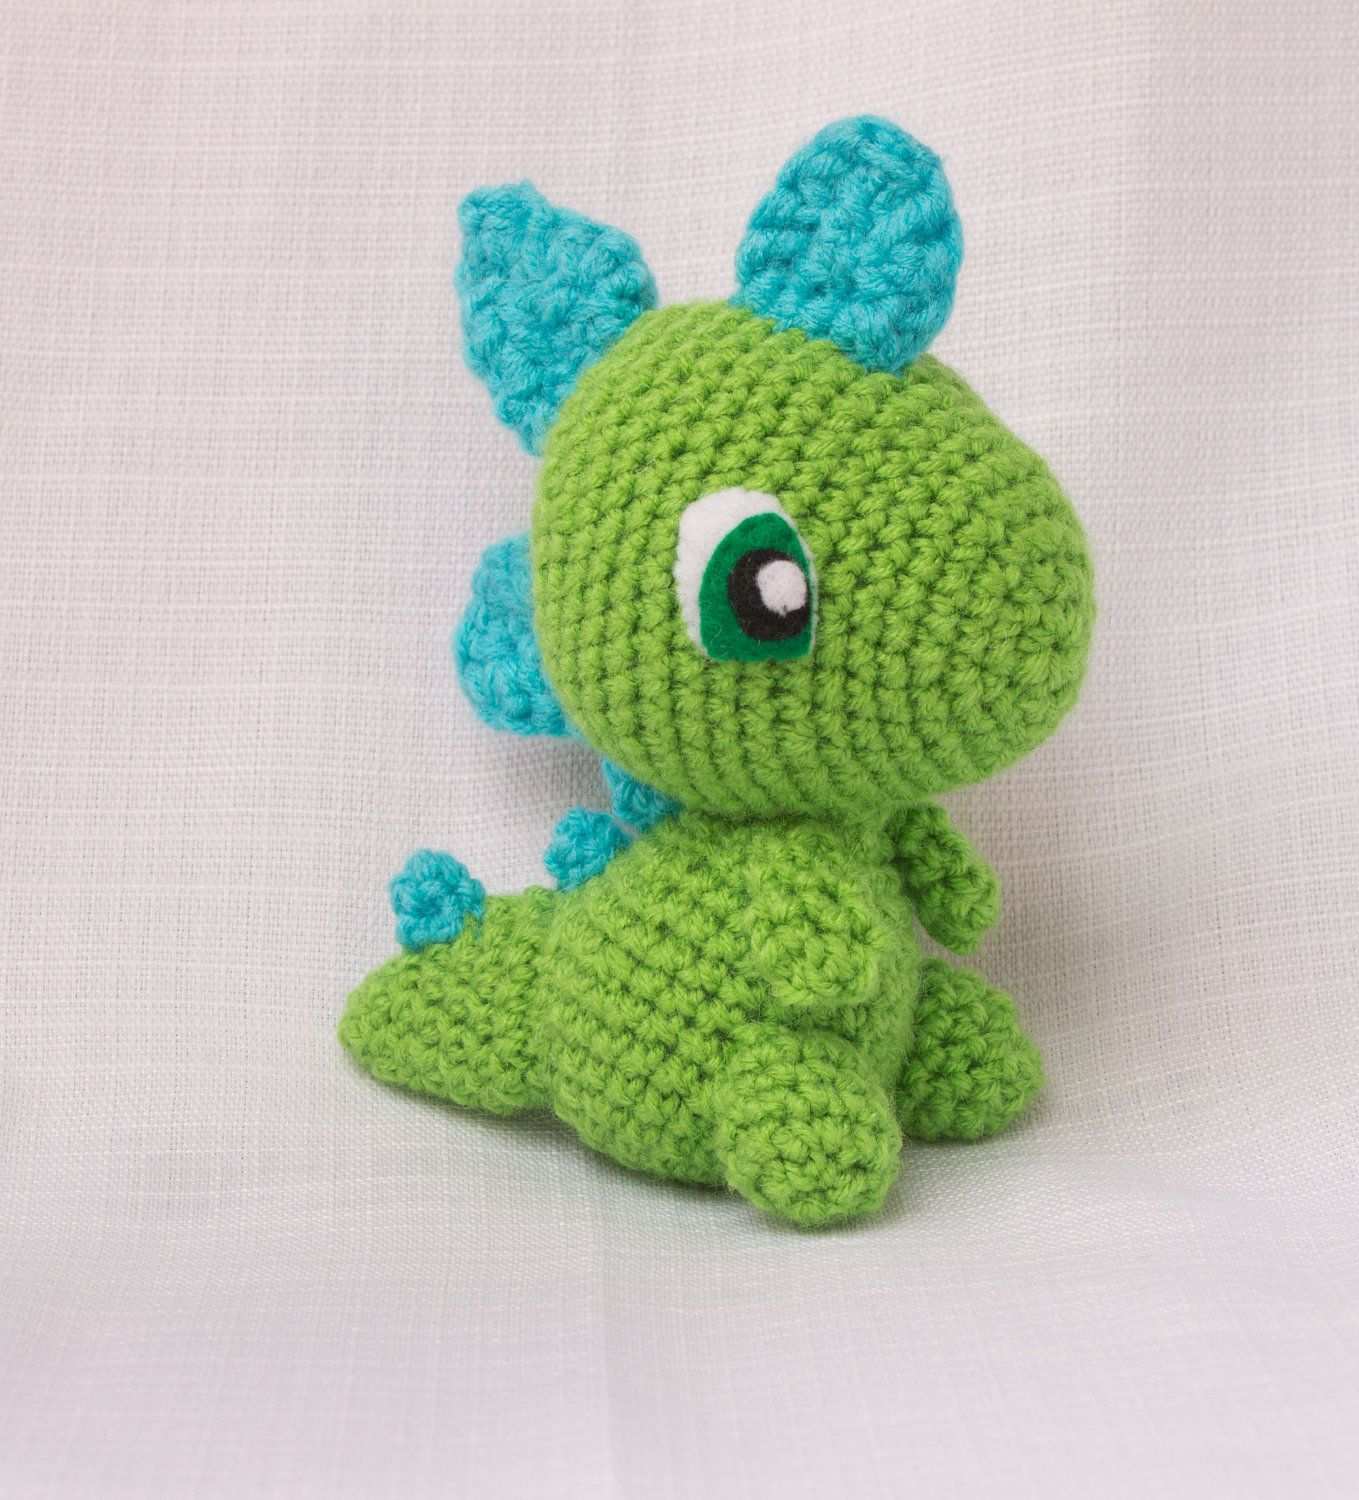 Dinosaur Stuffed Animal - Dinosaur Plush - Crochet Dinosaur - Custom ...